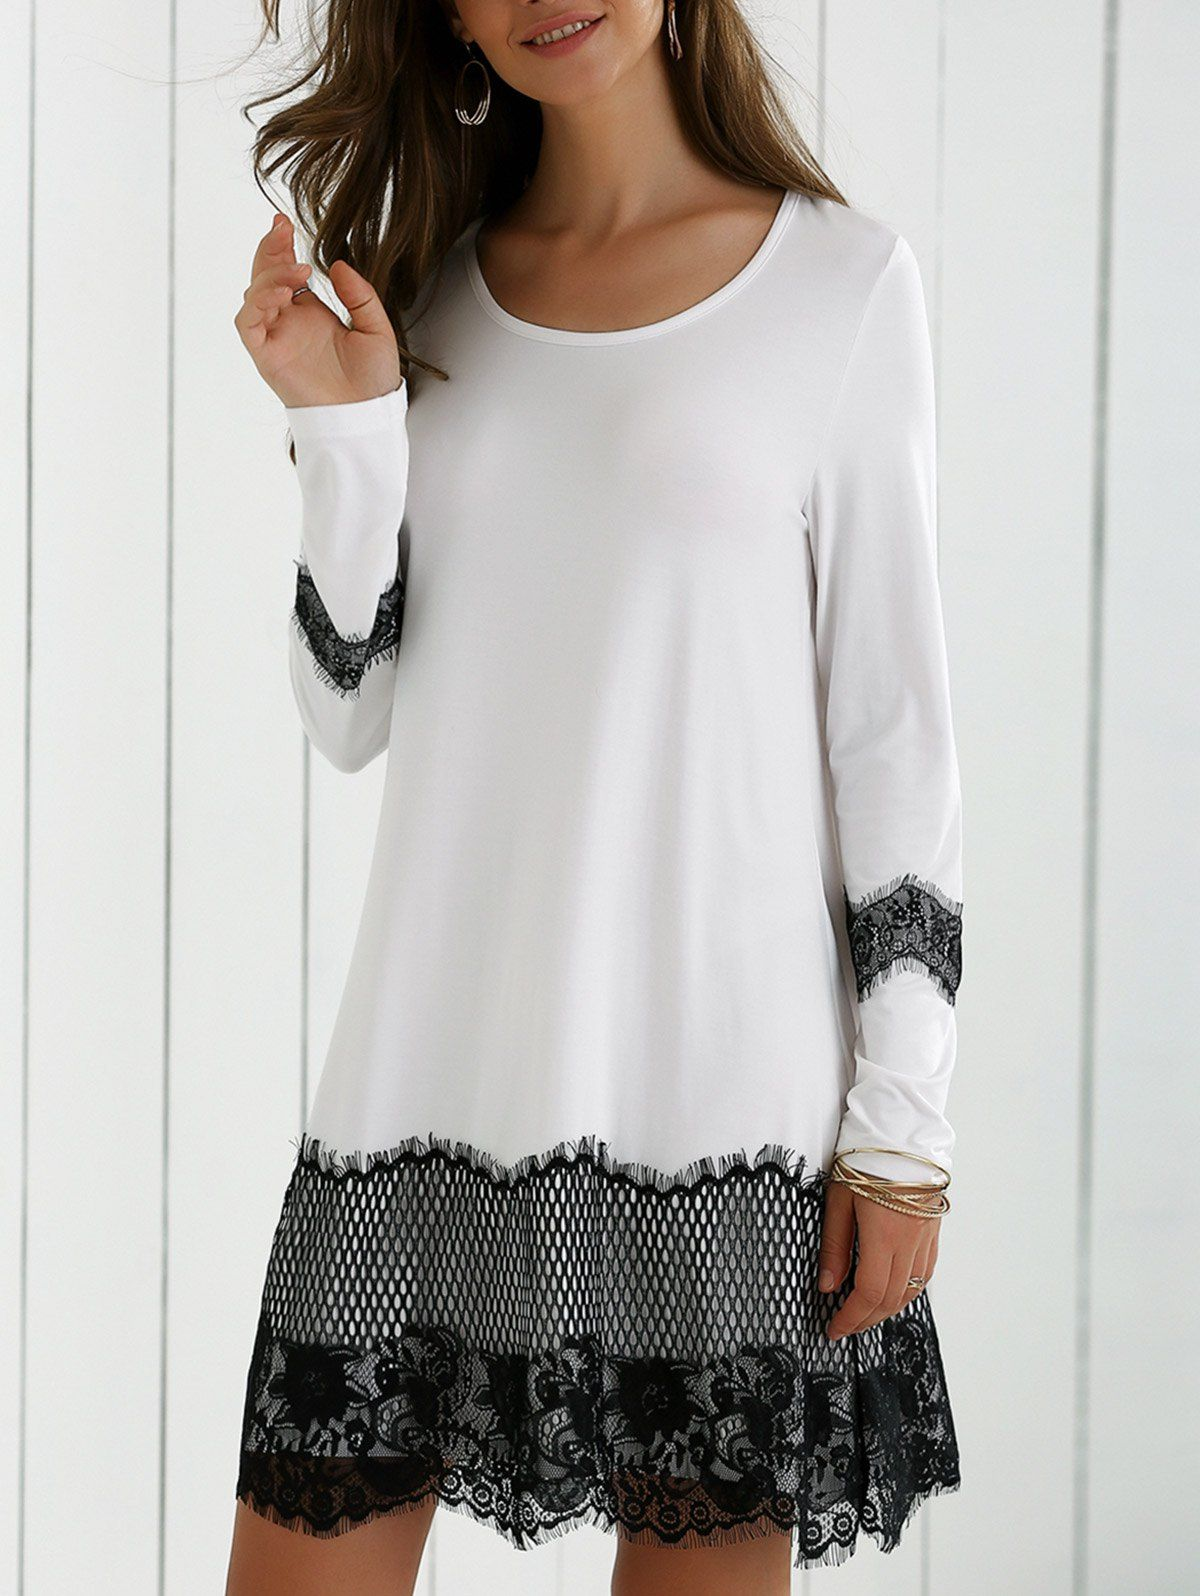 Lace splicing spring casual long sleeve dress my kind of clothing